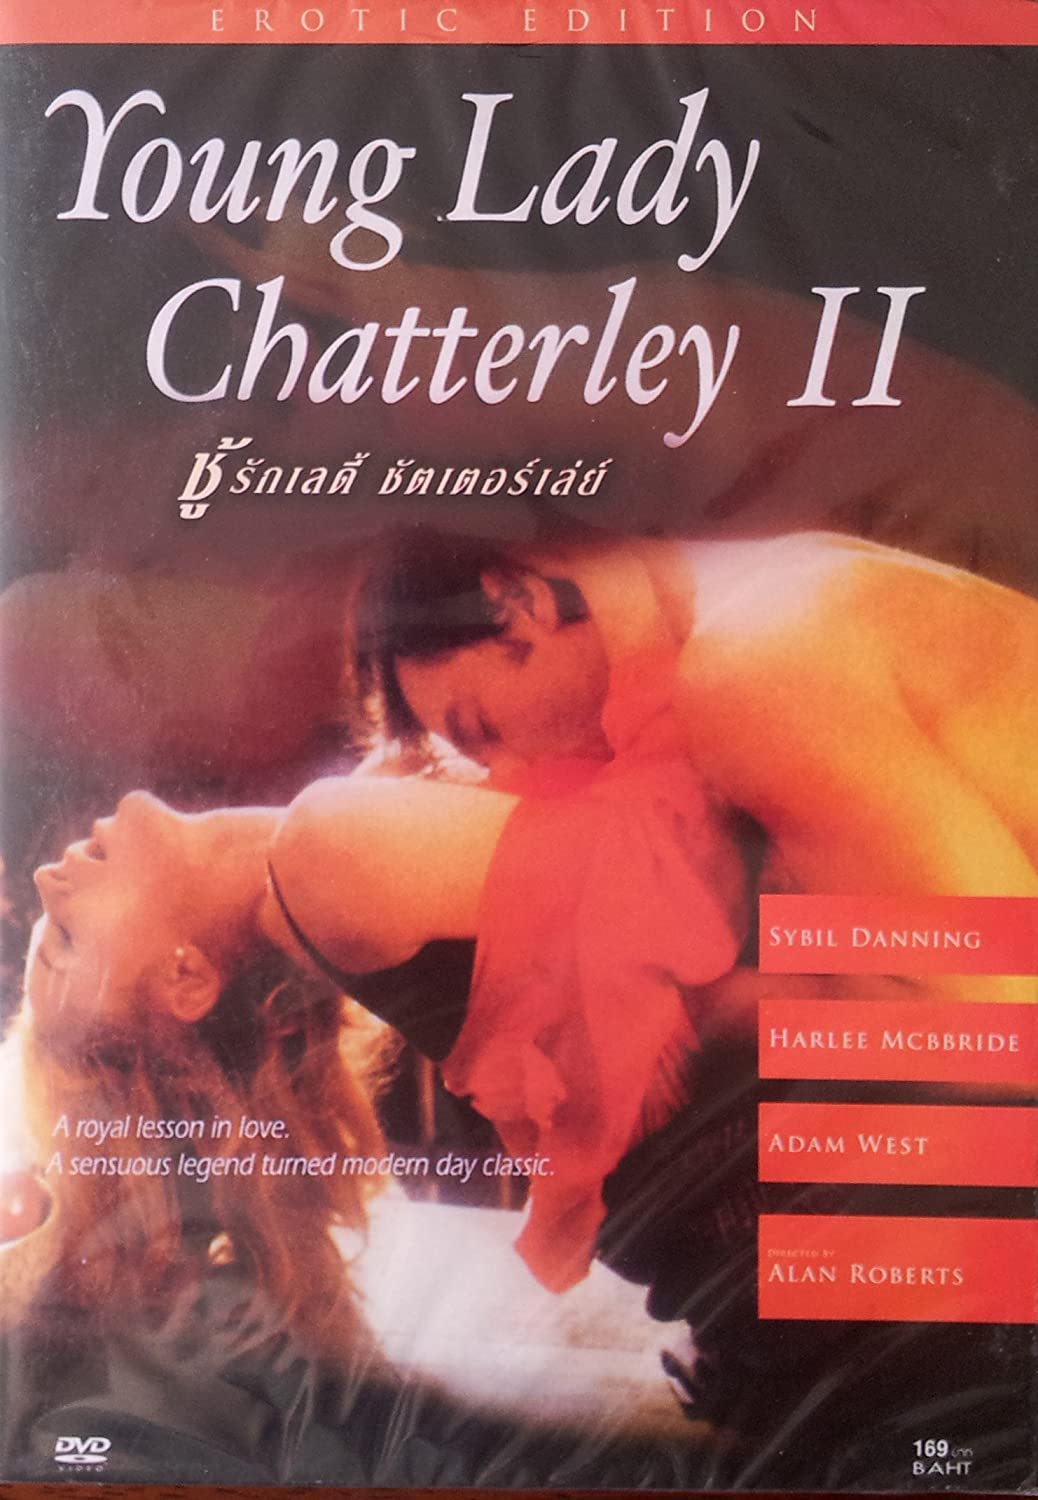 lady chatterley s lover analysis A summary of analysis in dh lawrence's lady chatterley's lover learn exactly what happened in this chapter, scene, or section of lady chatterley's lover and what it means perfect for acing essays, tests, and quizzes, as well as for writing lesson plans.